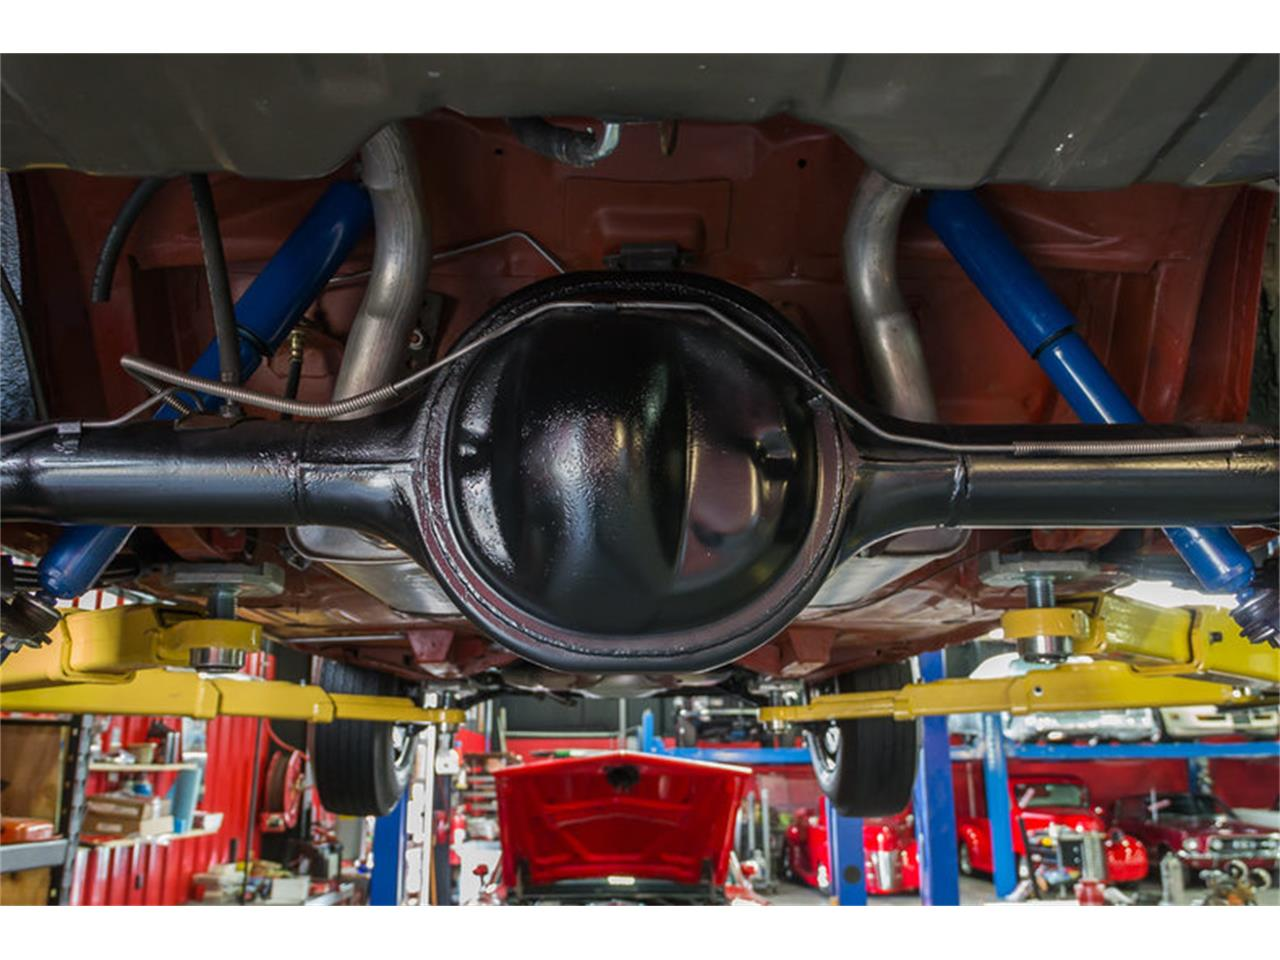 Large Picture of Classic 1969 Mustang Mach 1 S Code located in Michigan - $59,900.00 Offered by Vanguard Motor Sales - IS3G